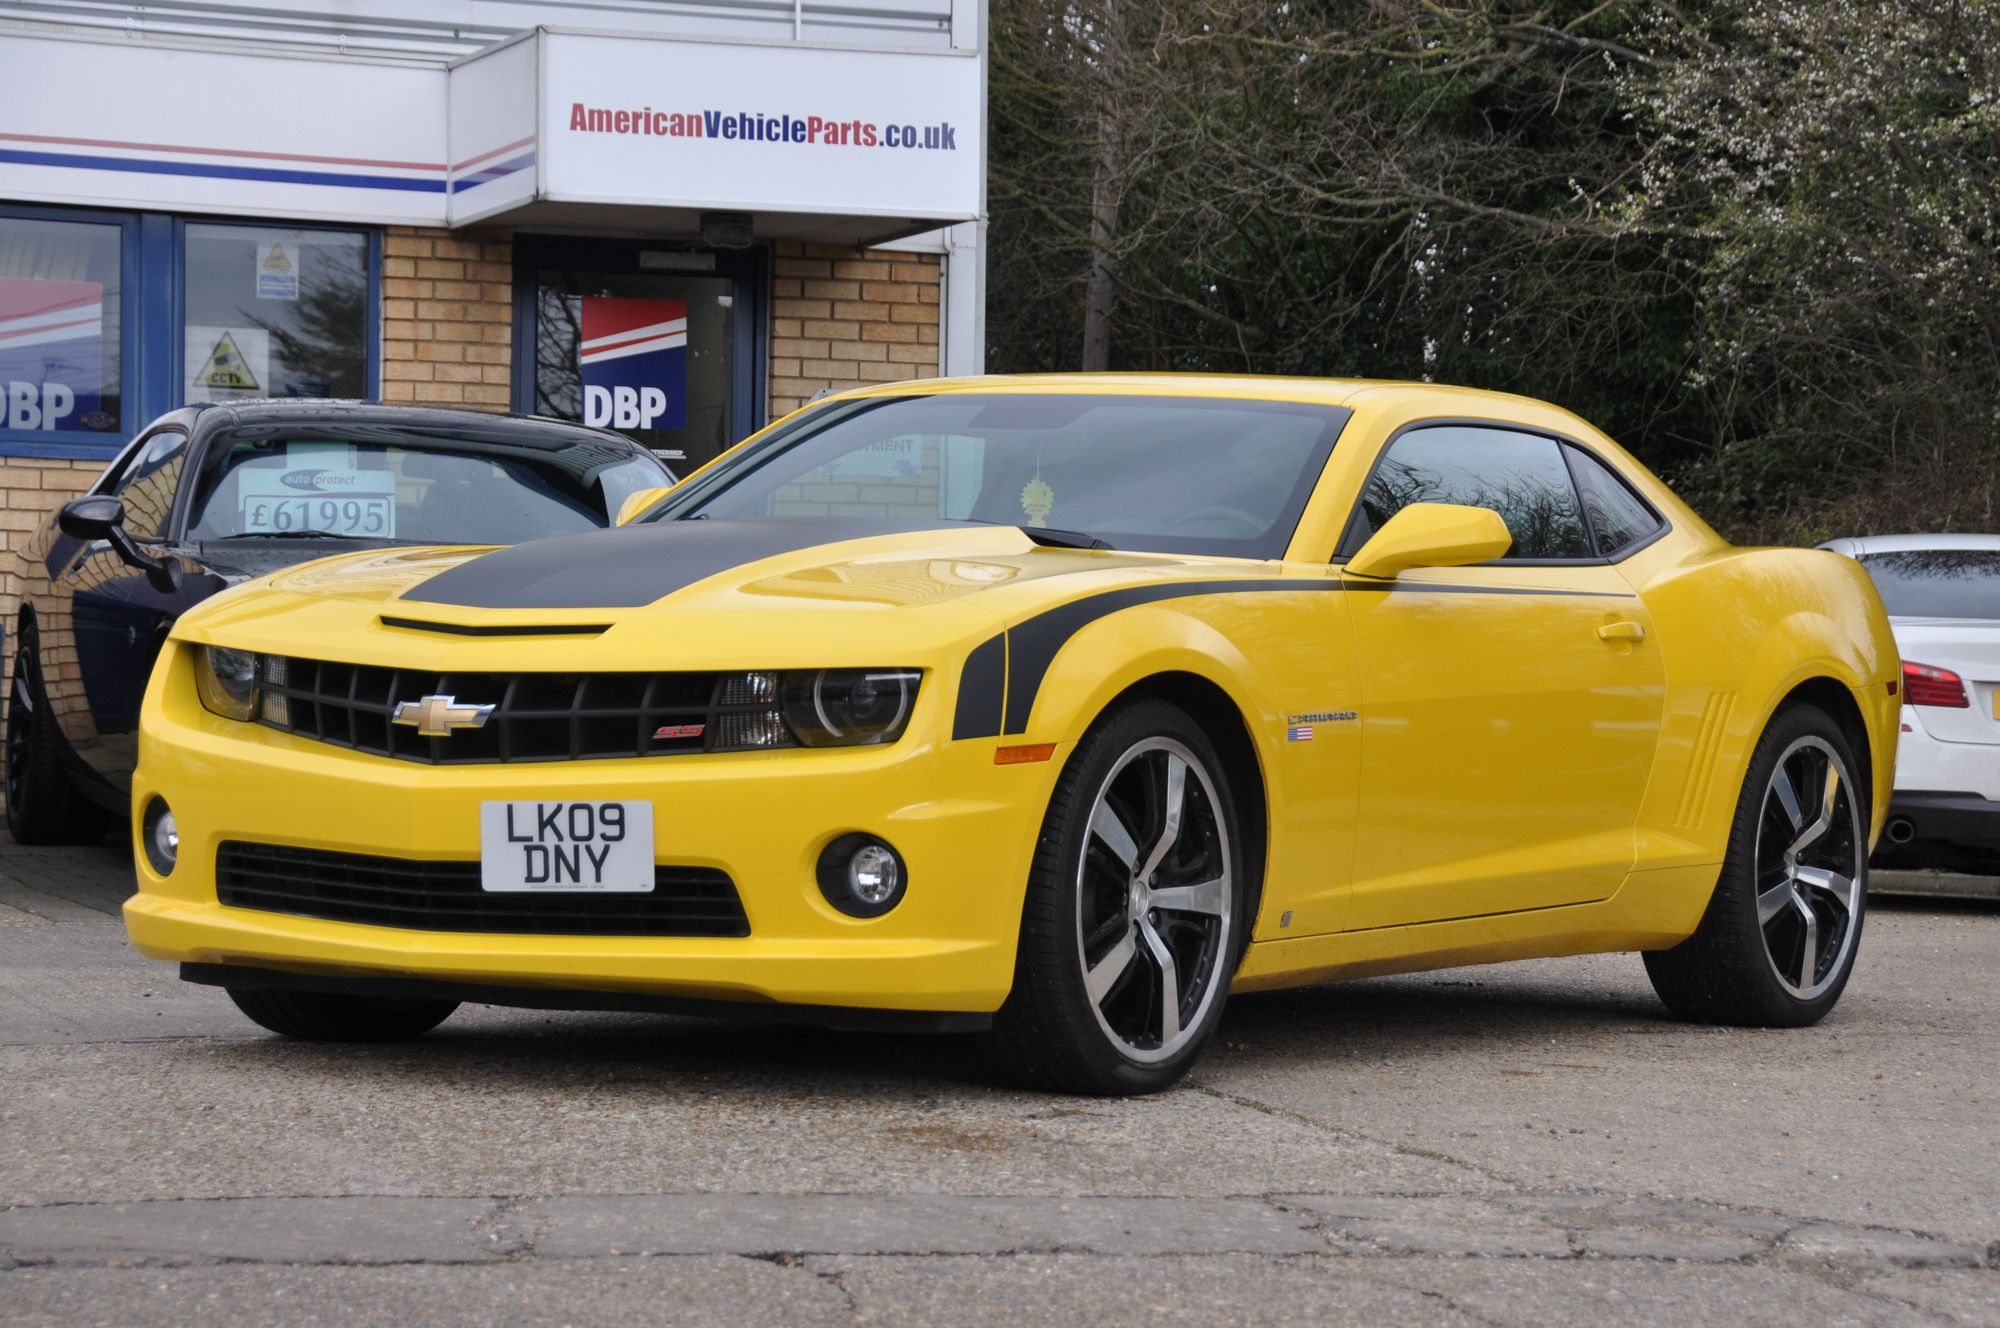 Chevrolet camaro 2ss 6 2 litre v8 auto in yellow chevrolet camaro chevy